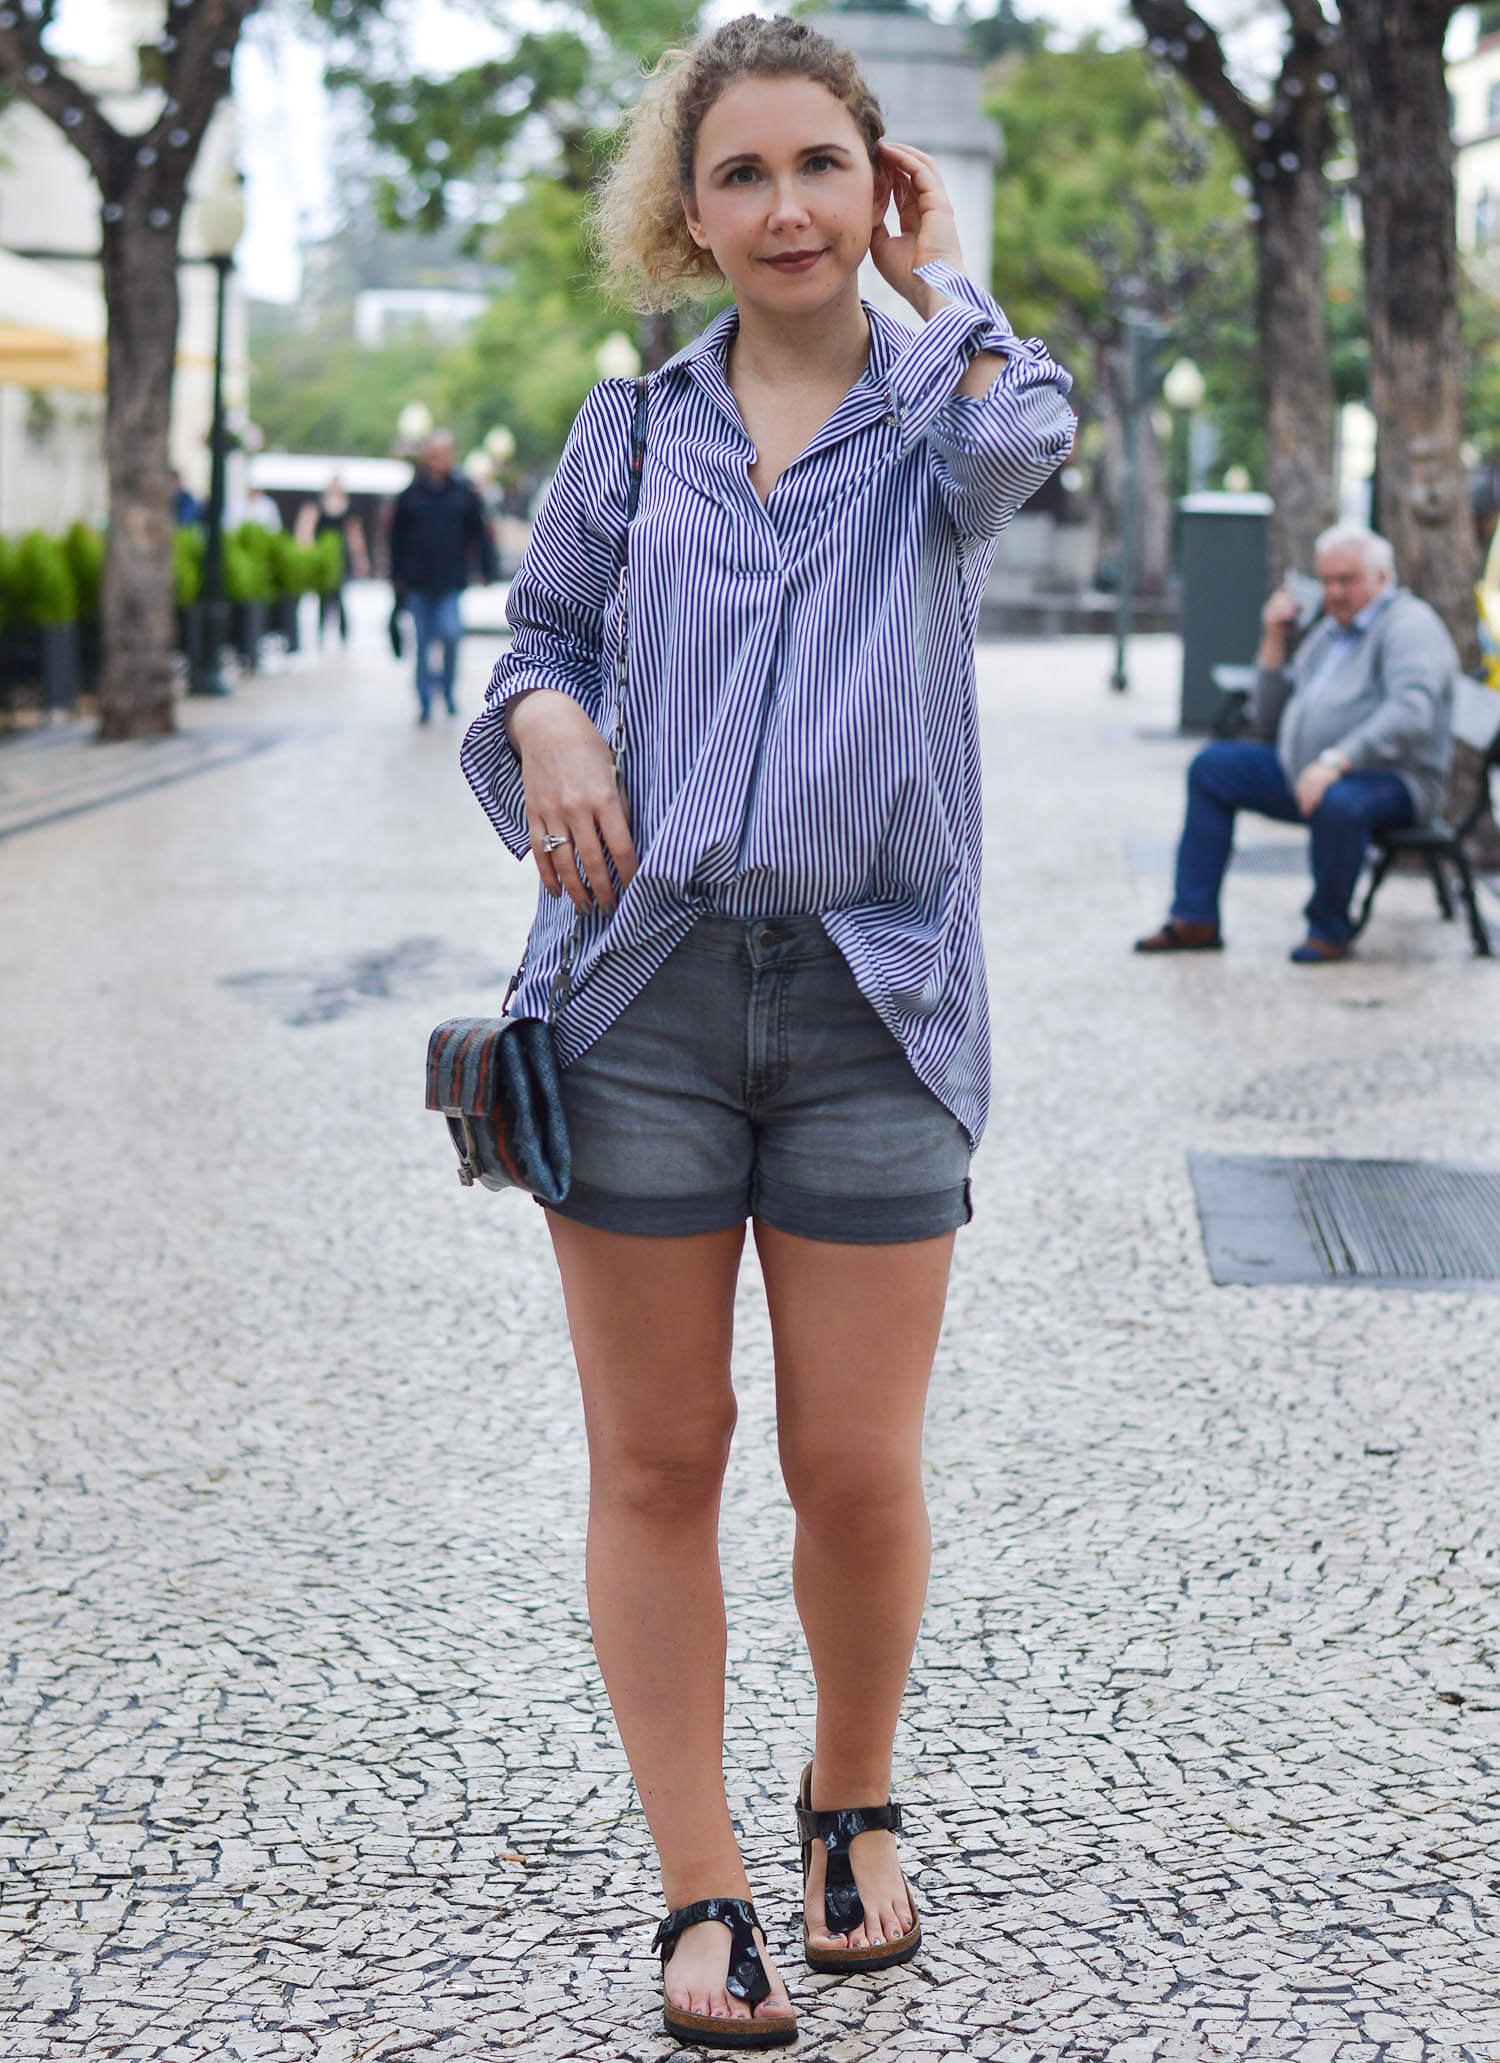 Kationette-fashionblogger-nrw-Outfit-Striped-Blouse-Hotpants-and-Birkenstocks-for-a-stroll-through-Funchal-Madeira-travelblogger